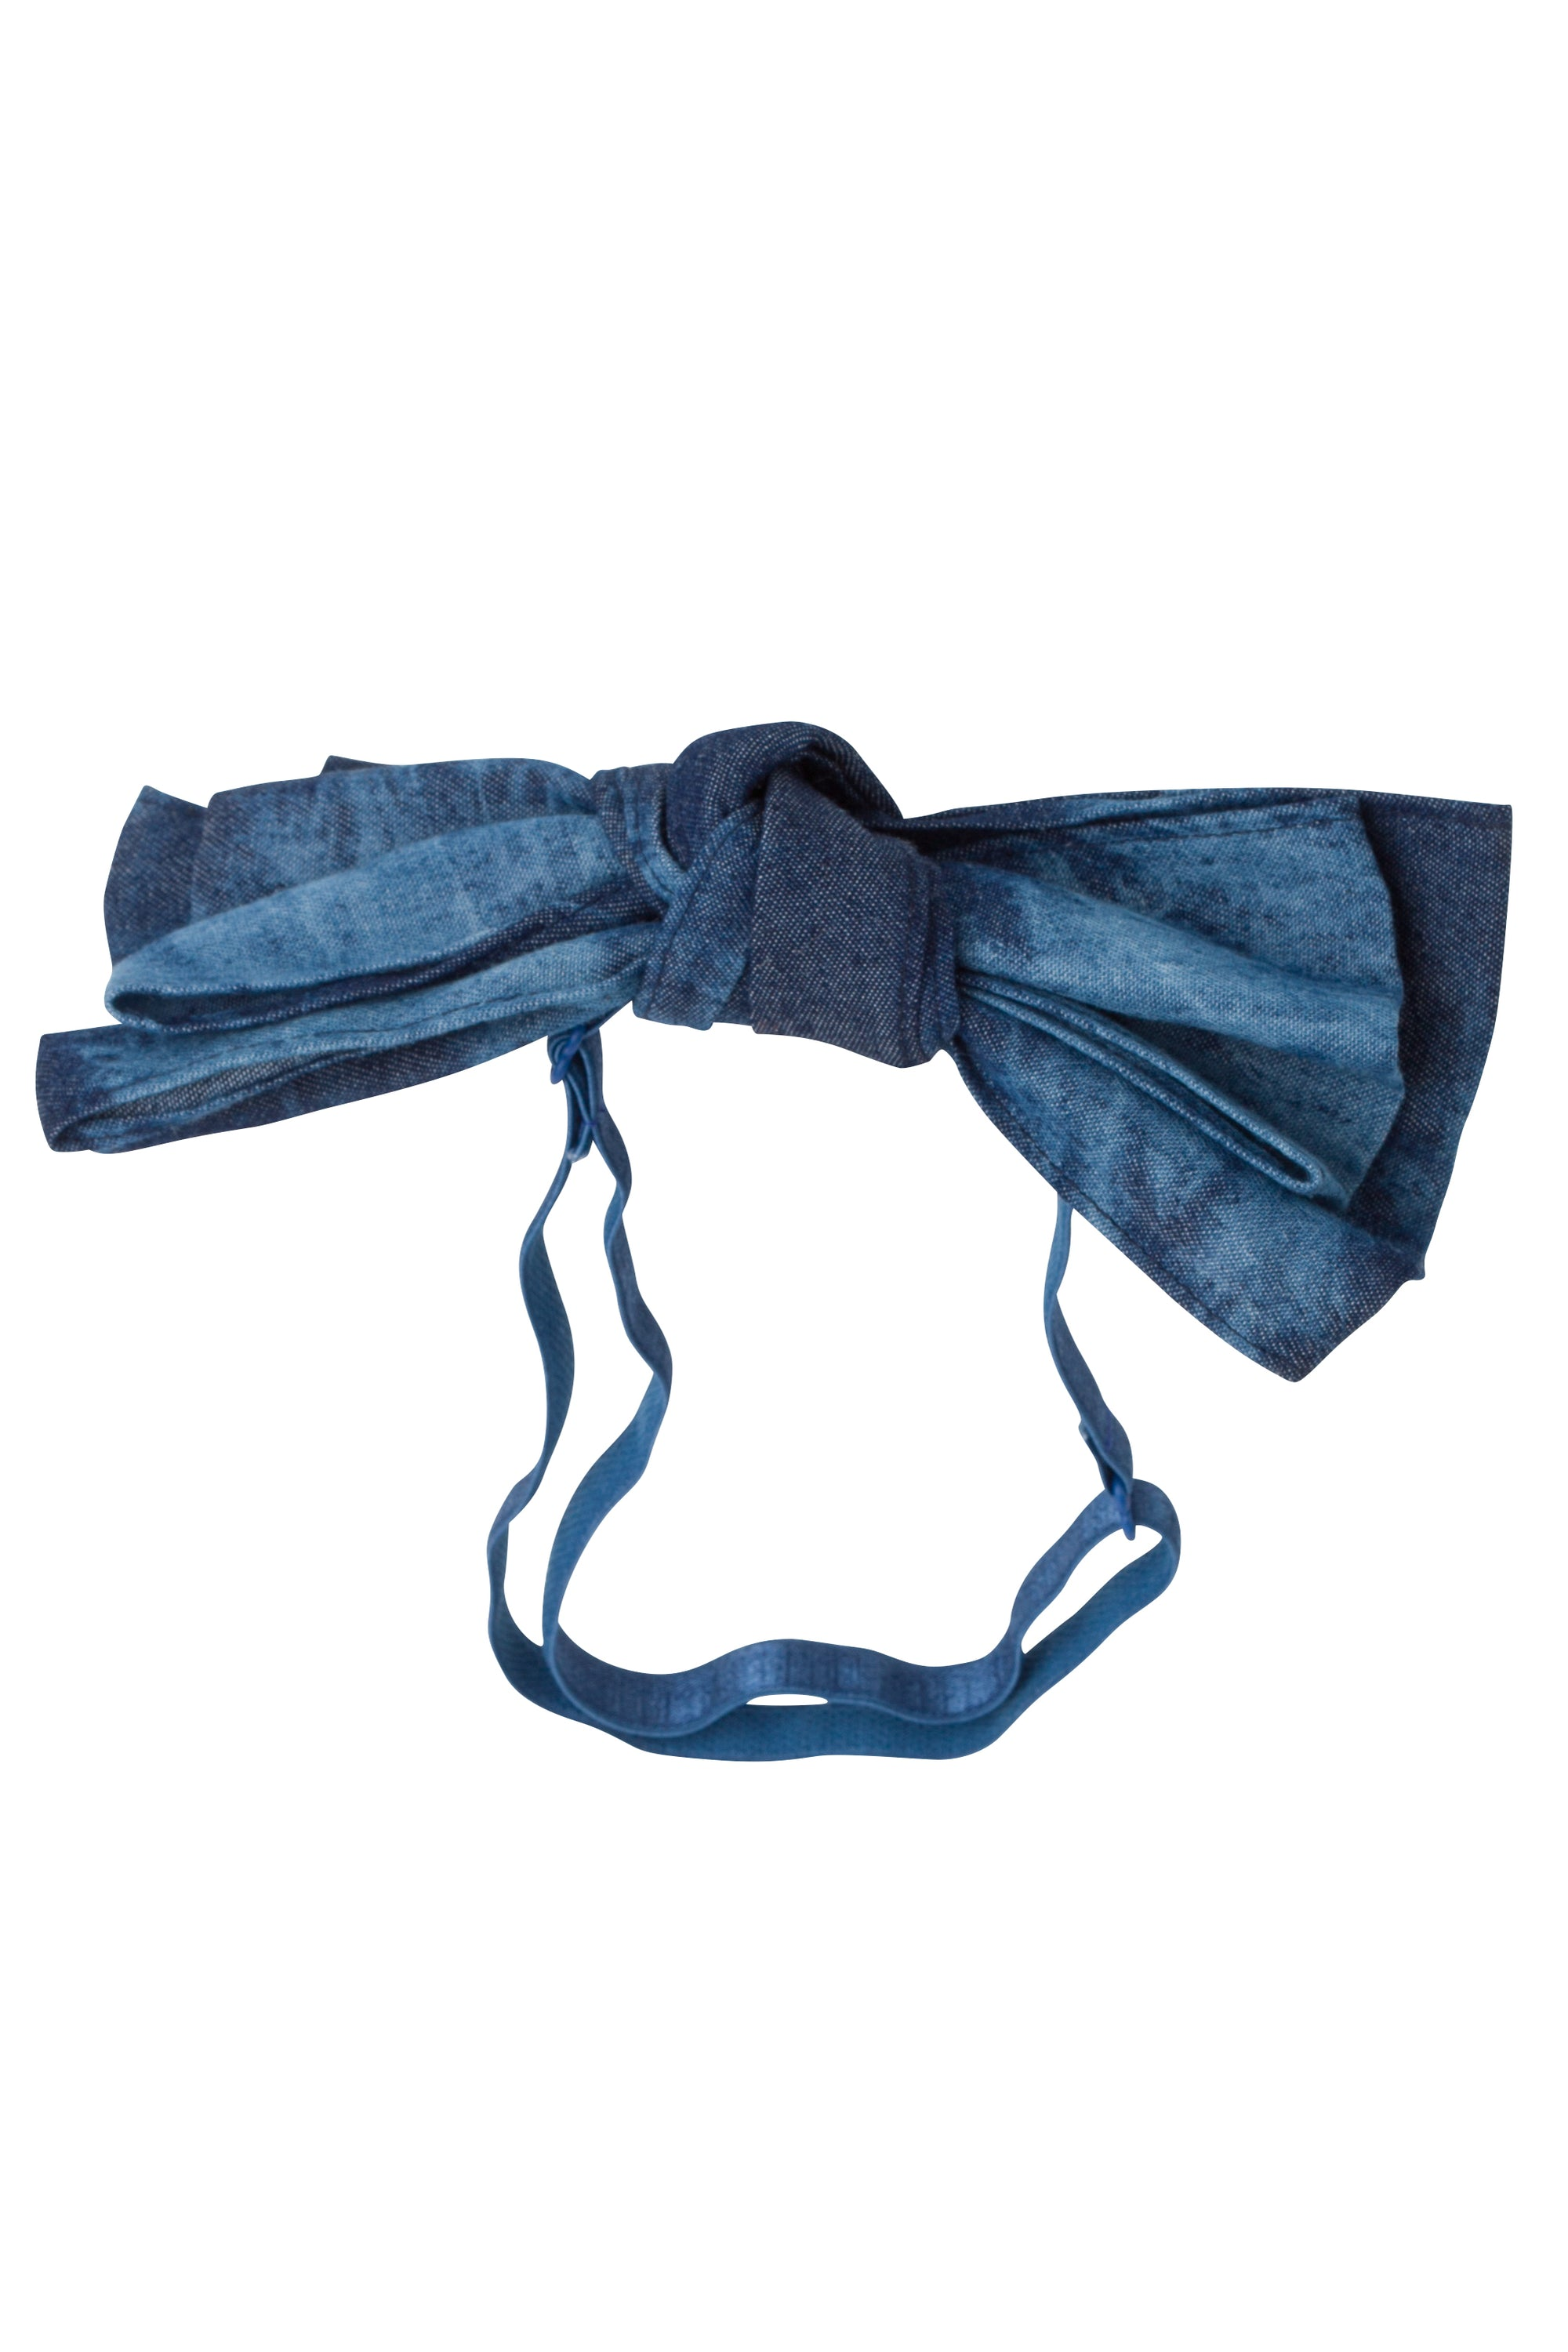 Floppy Denim Wrap - Invisible Tye Dye - PROJECT 6, modest fashion